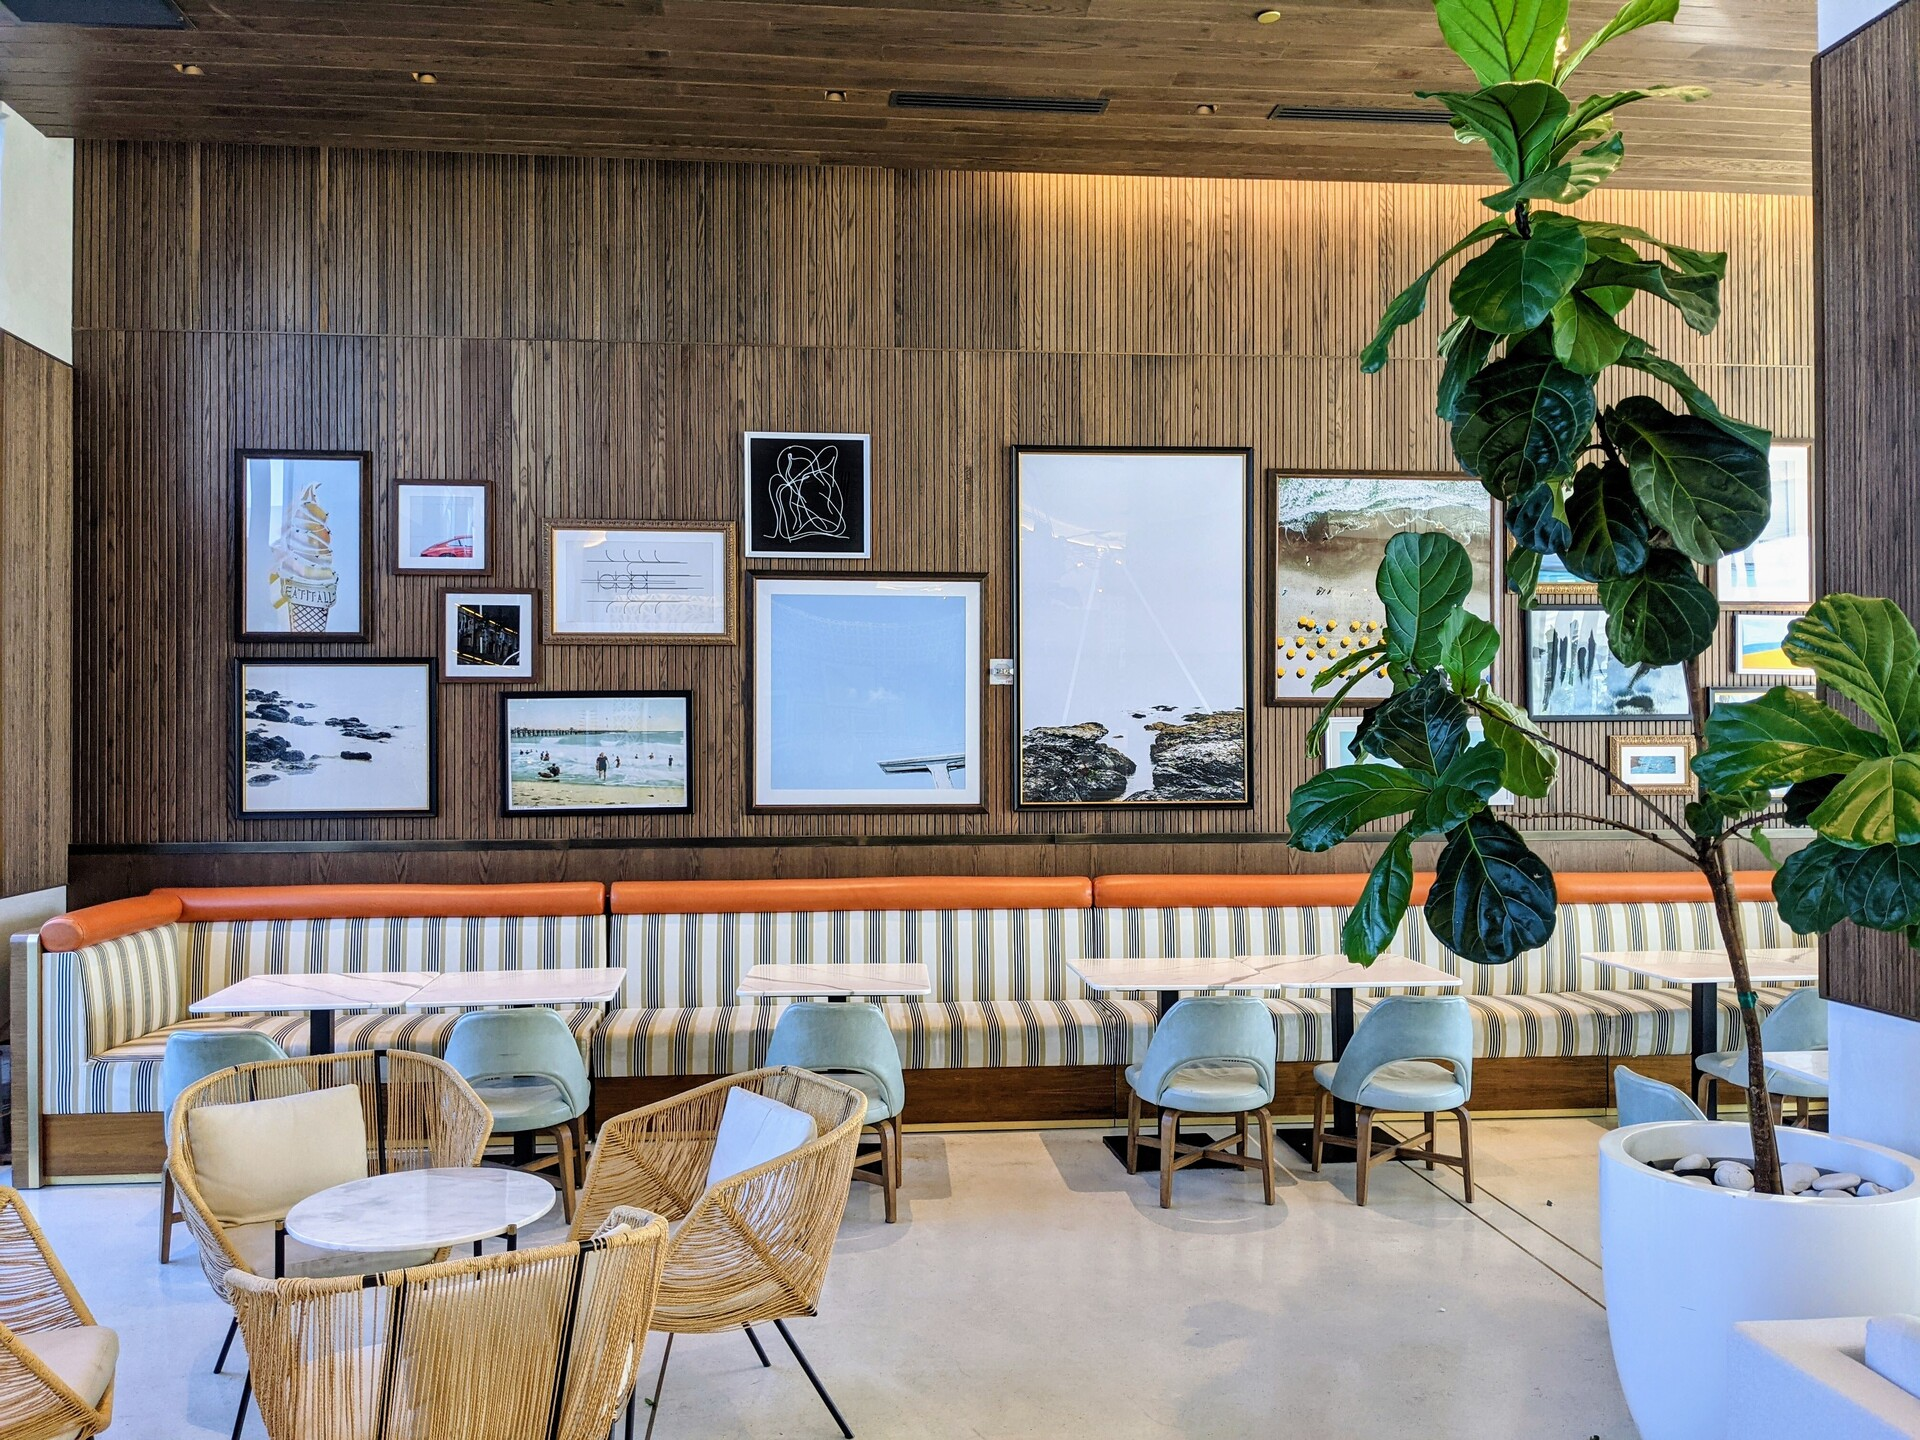 Sit down and enjoy a bite to eat at the hotel cafe.  They partnered with Surfacing Solutions and used their solid wood panels to create a gallery wall to showcase a variety of art.